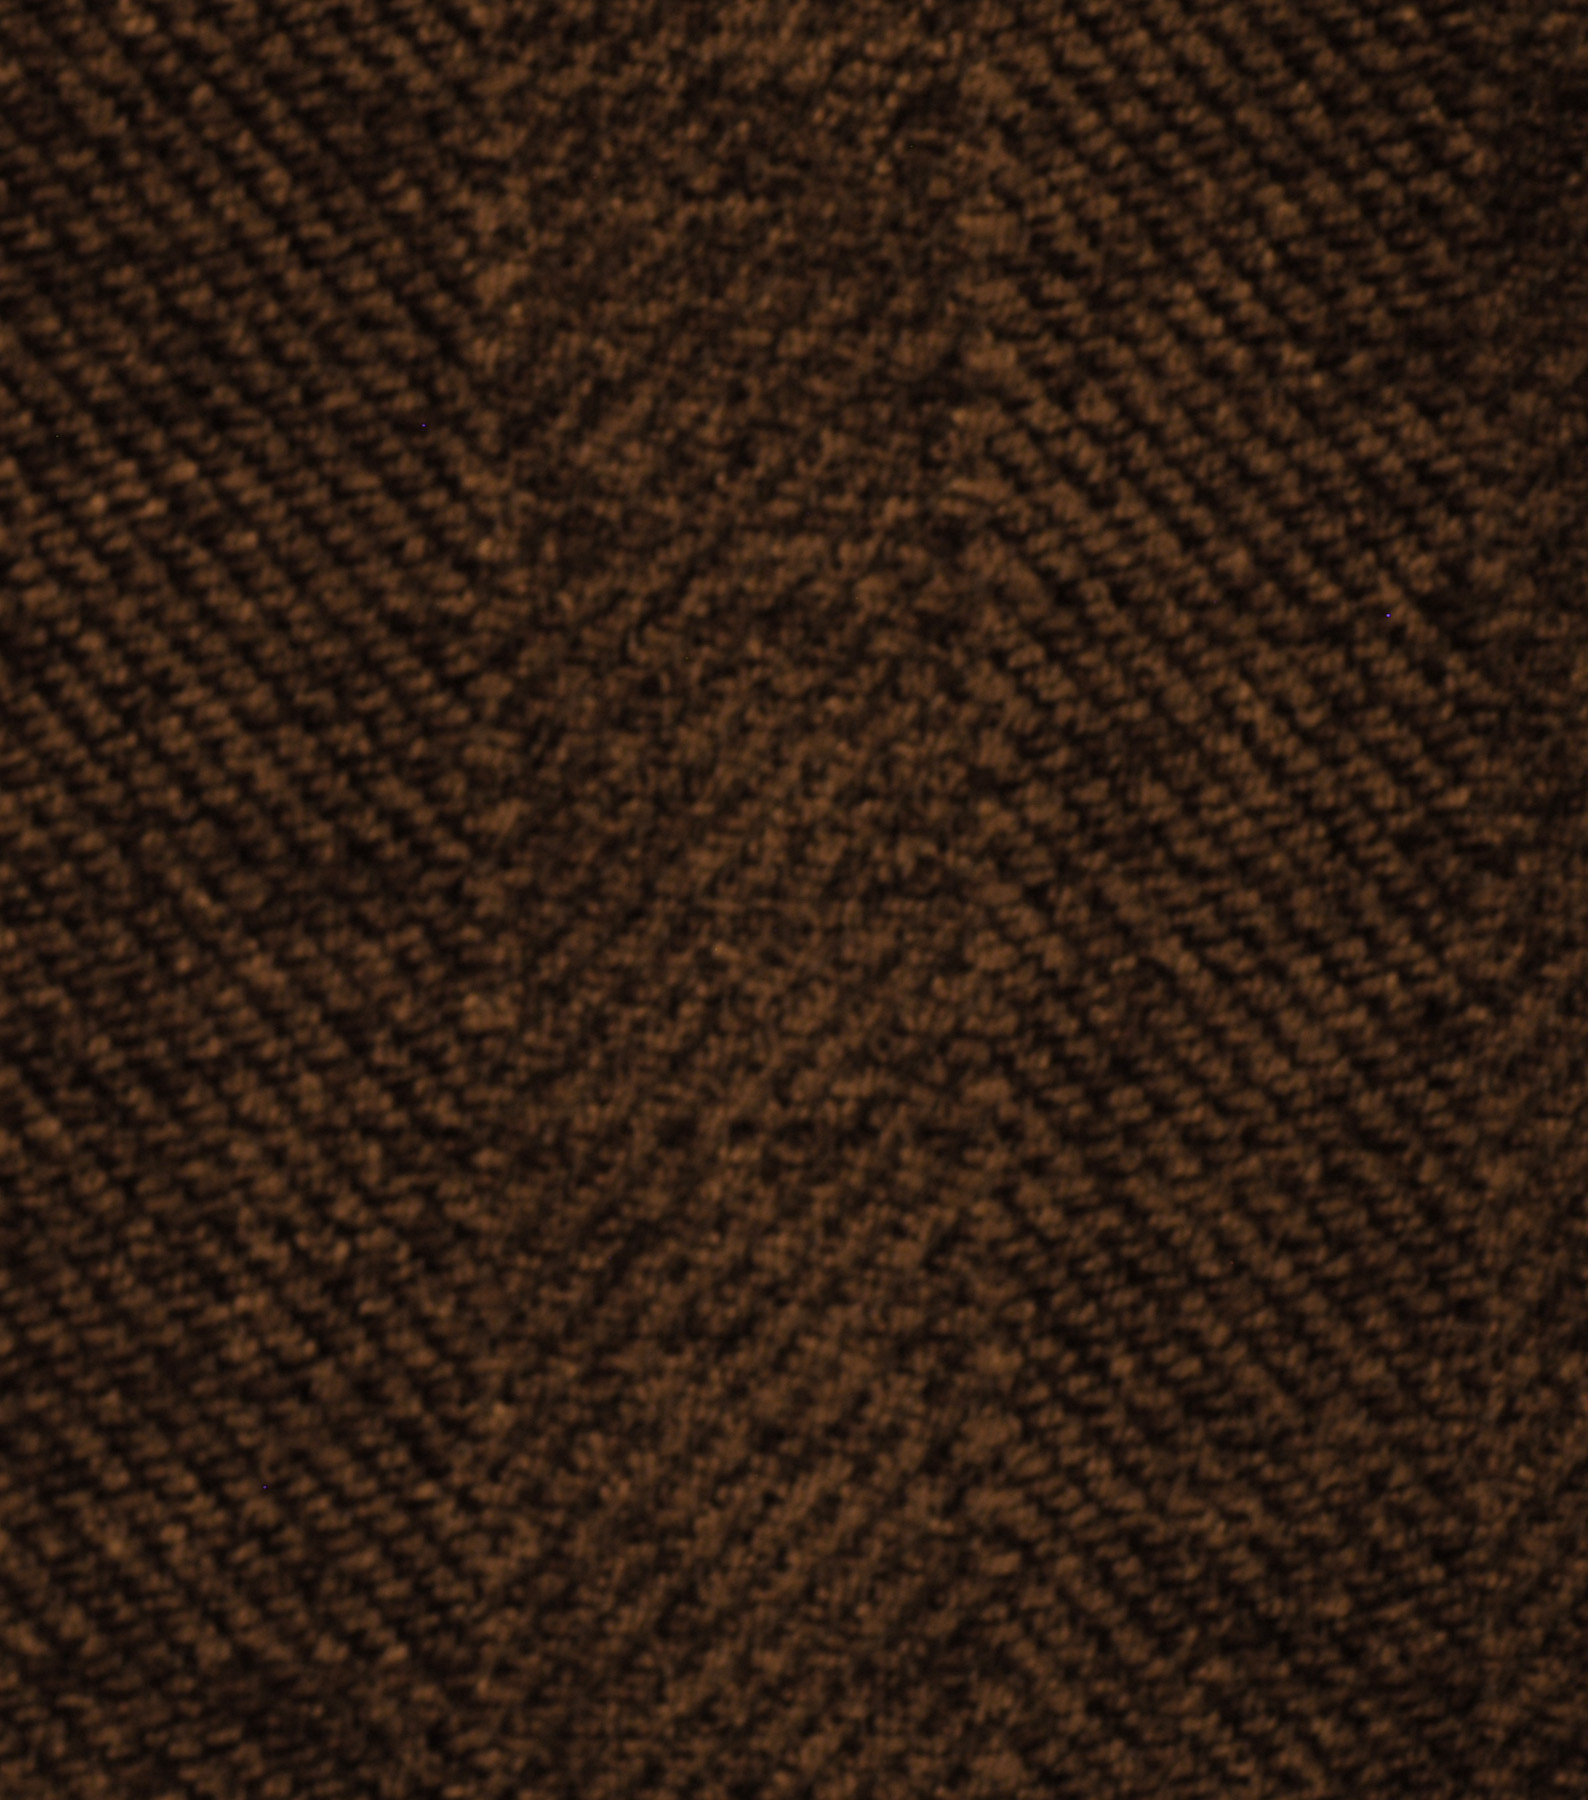 Home Decor 8\u0022x8\u0022 Fabric Swatch-Signature Series Sweater Cocoa